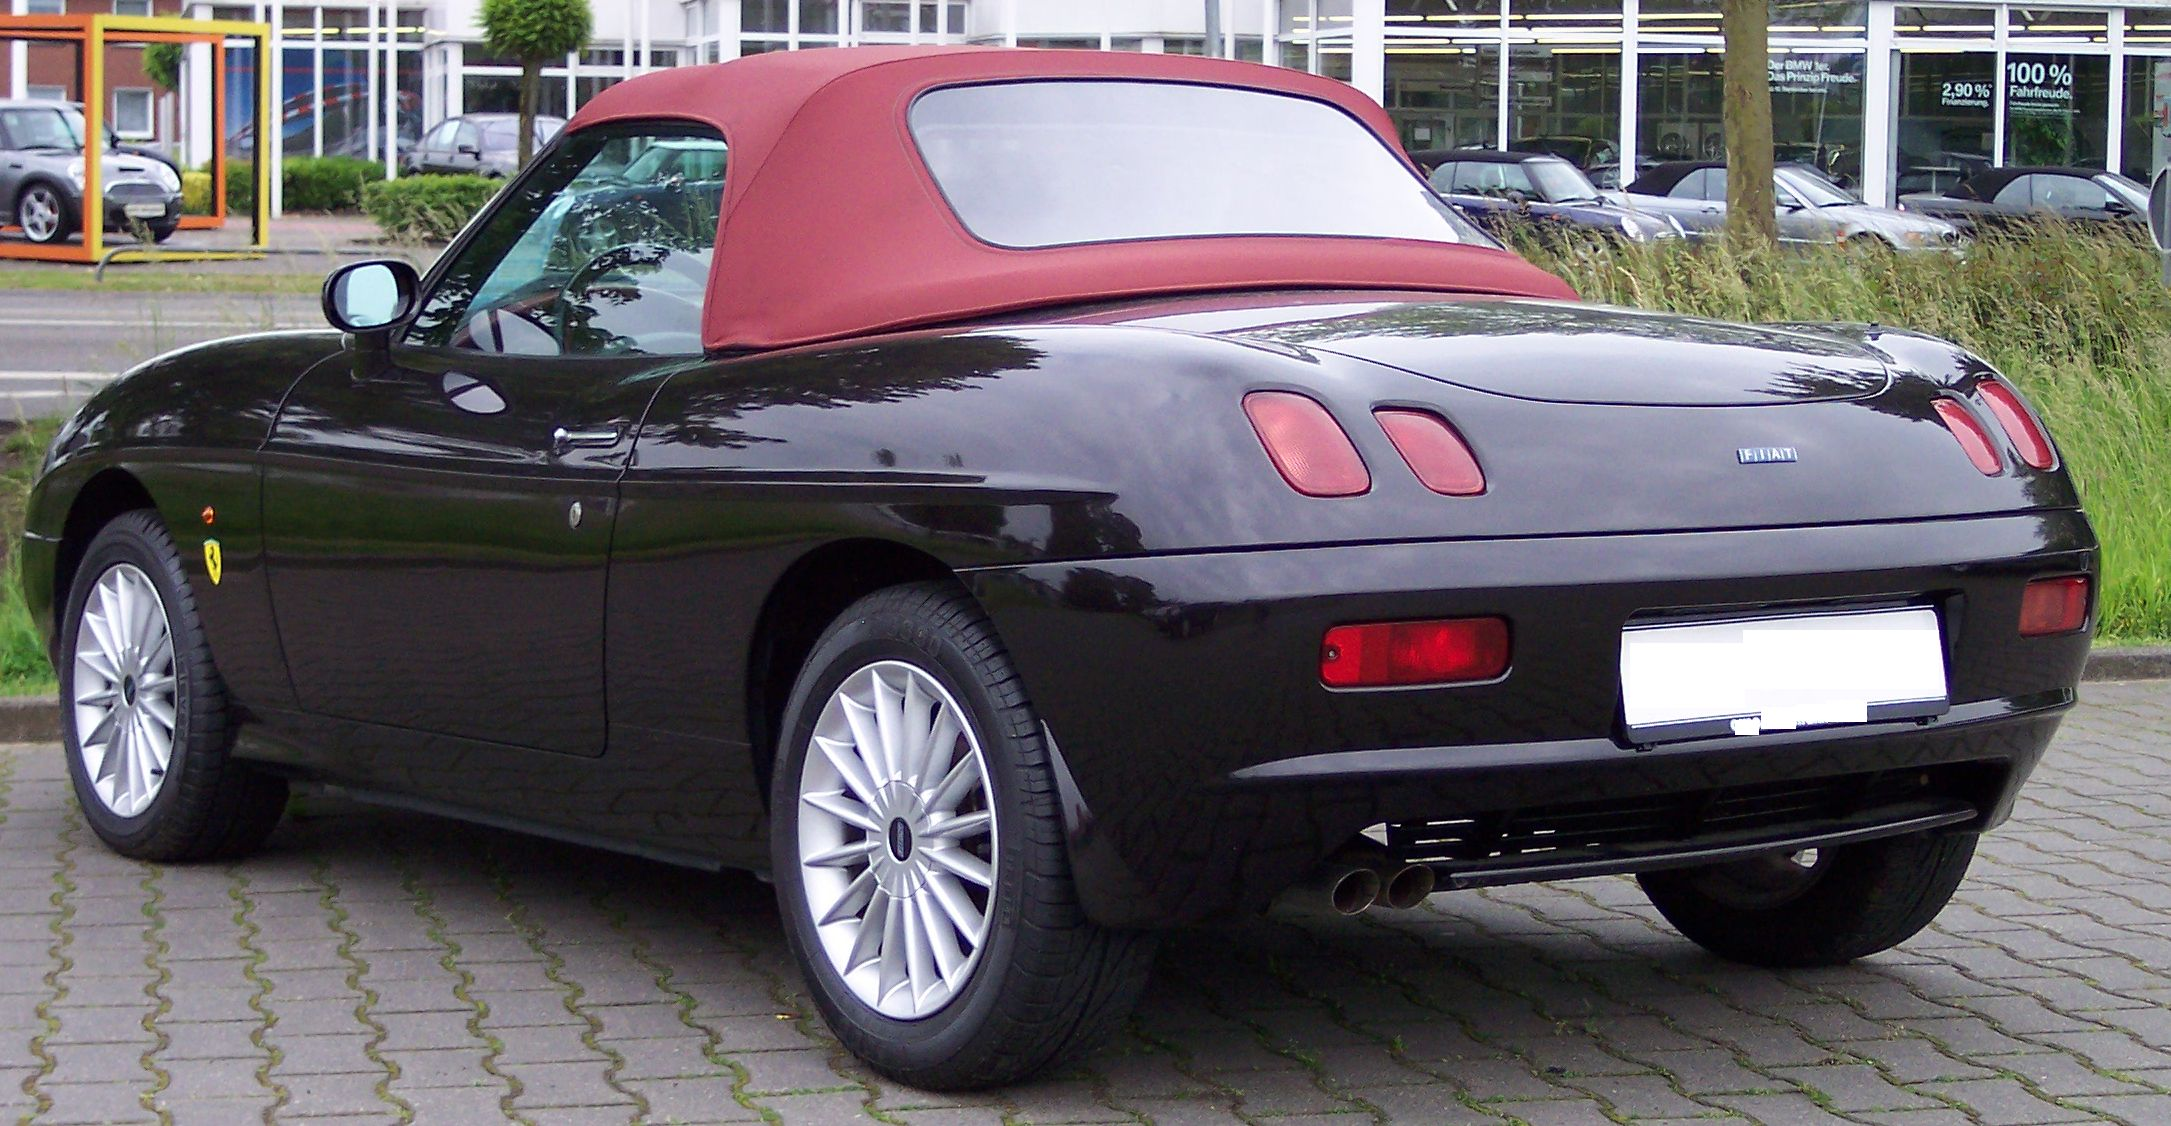 Fiat barchetta photo - 1